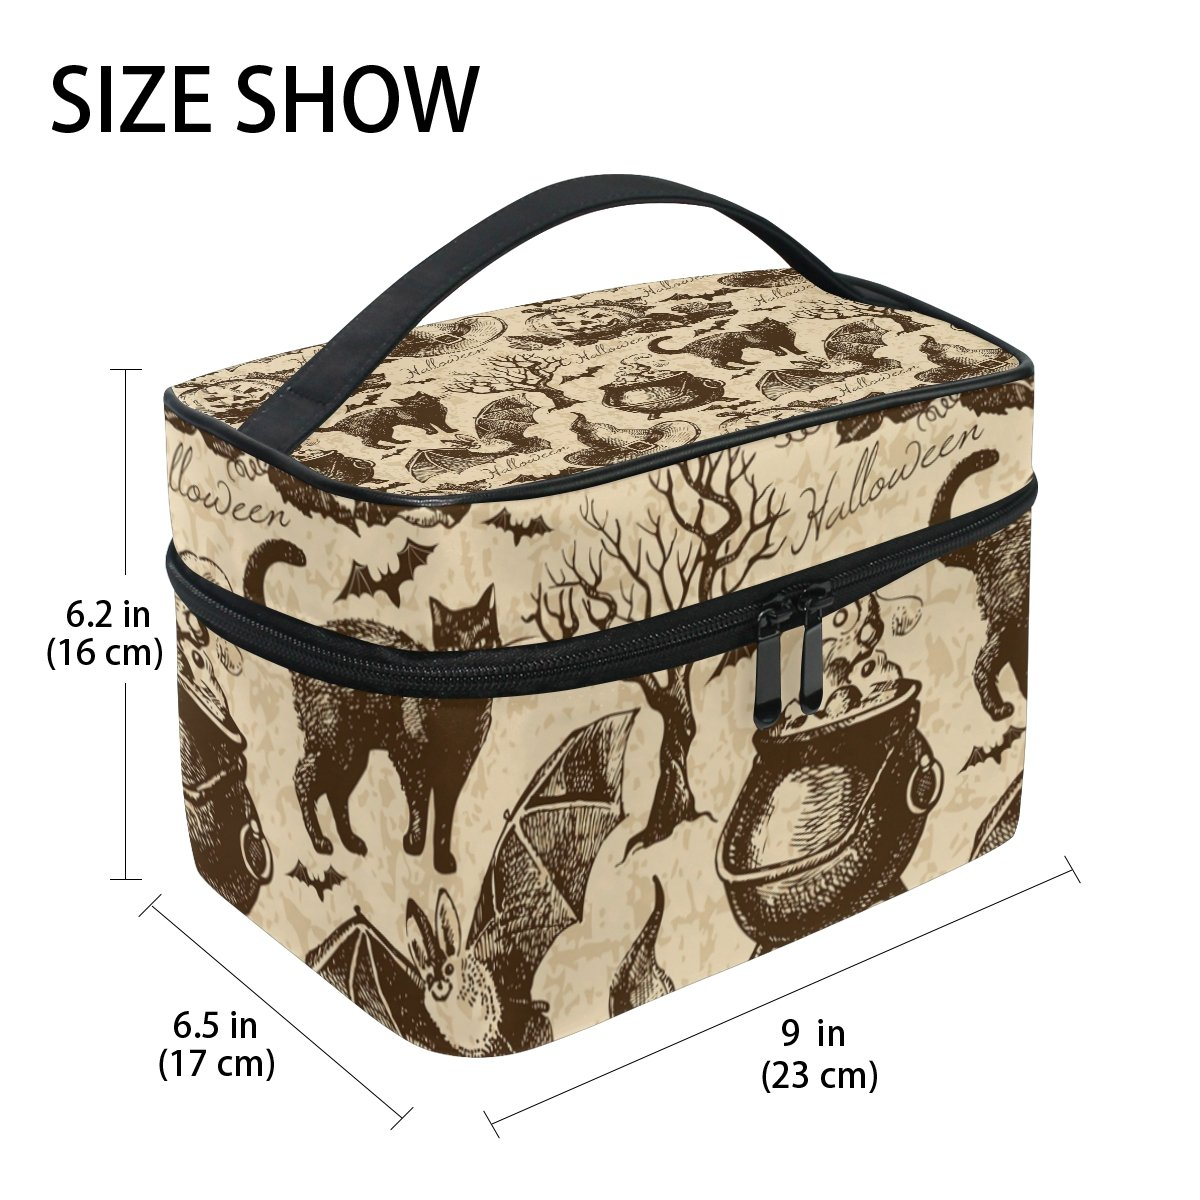 GIOVANIOR Vintage Halloween Black Cat Bat Print Large Cosmetic Bag Travel Makeup Organizer Case Holder for Women Girls